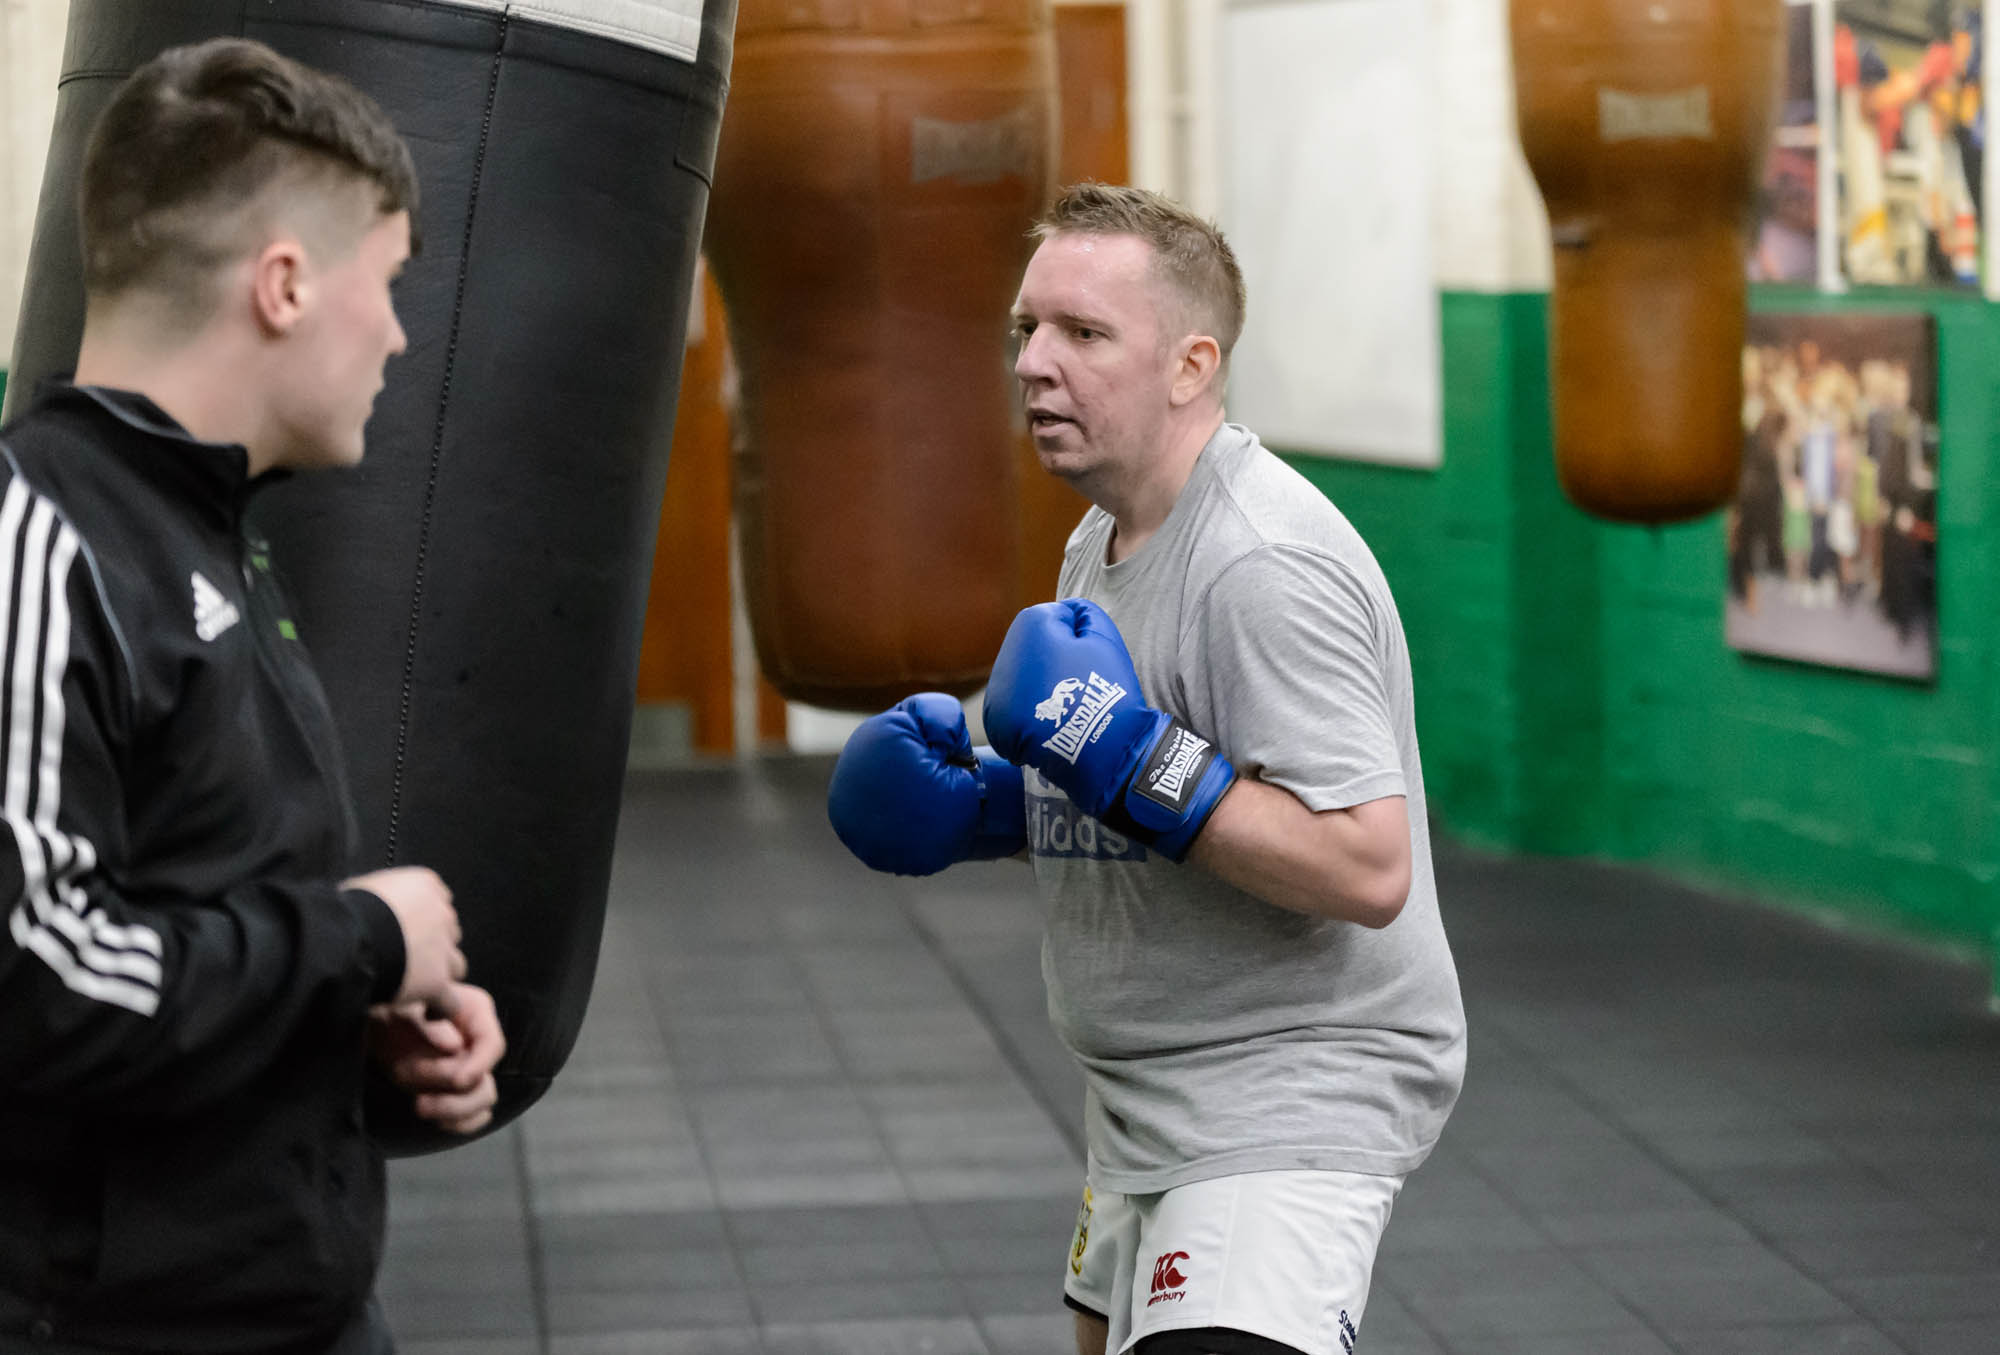 A coach trains a man in boxing